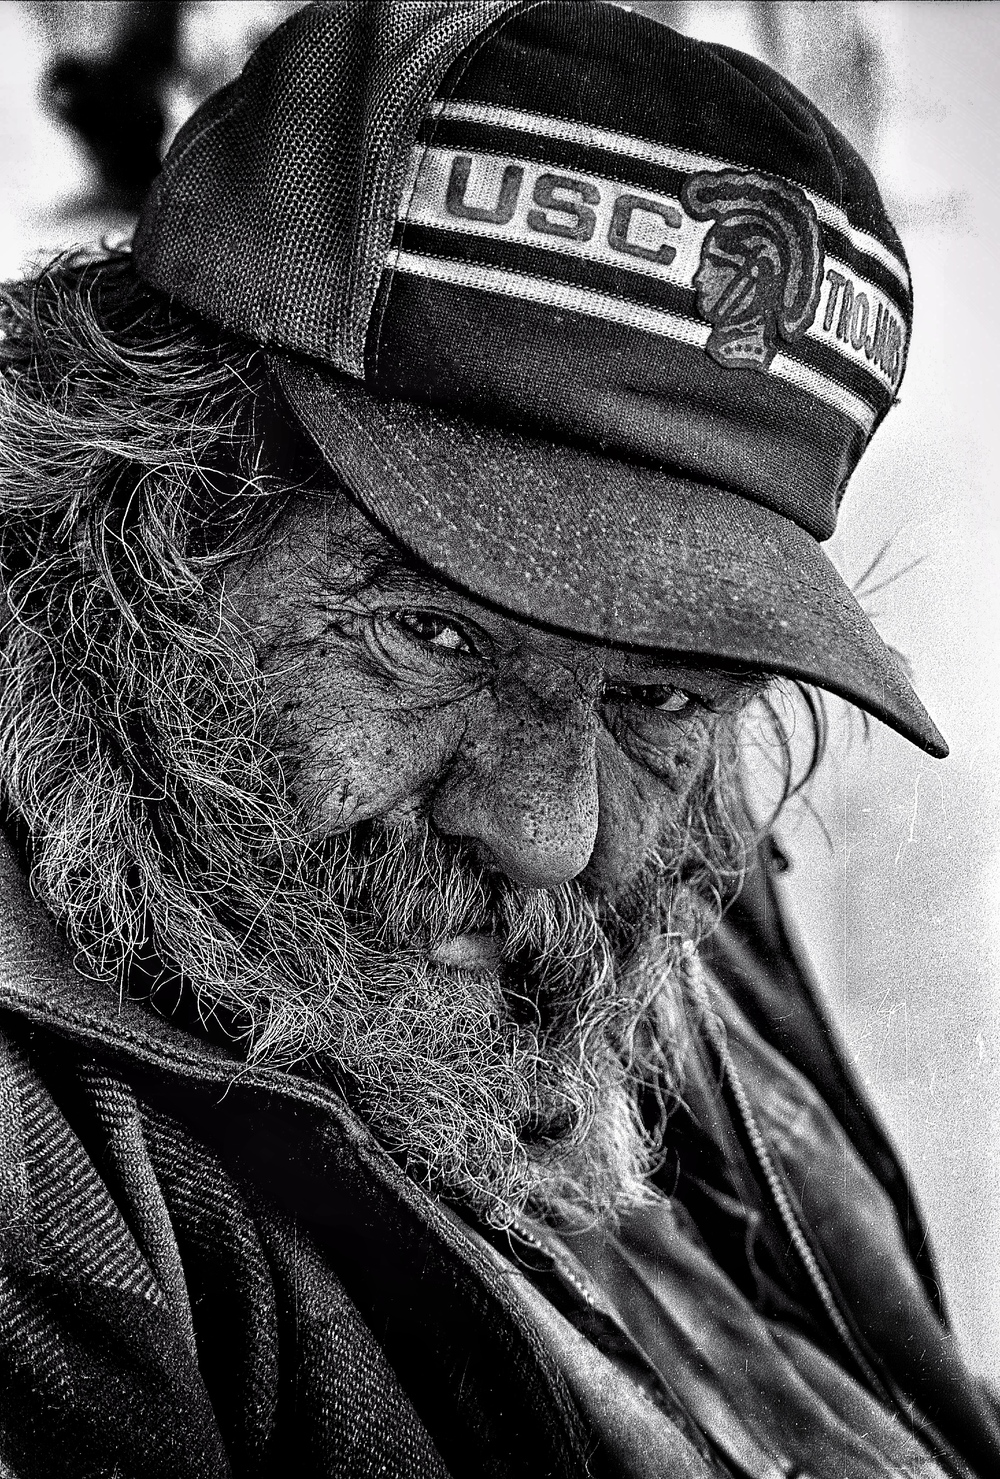 Bob, homeless in Van Nuys CA, 1984